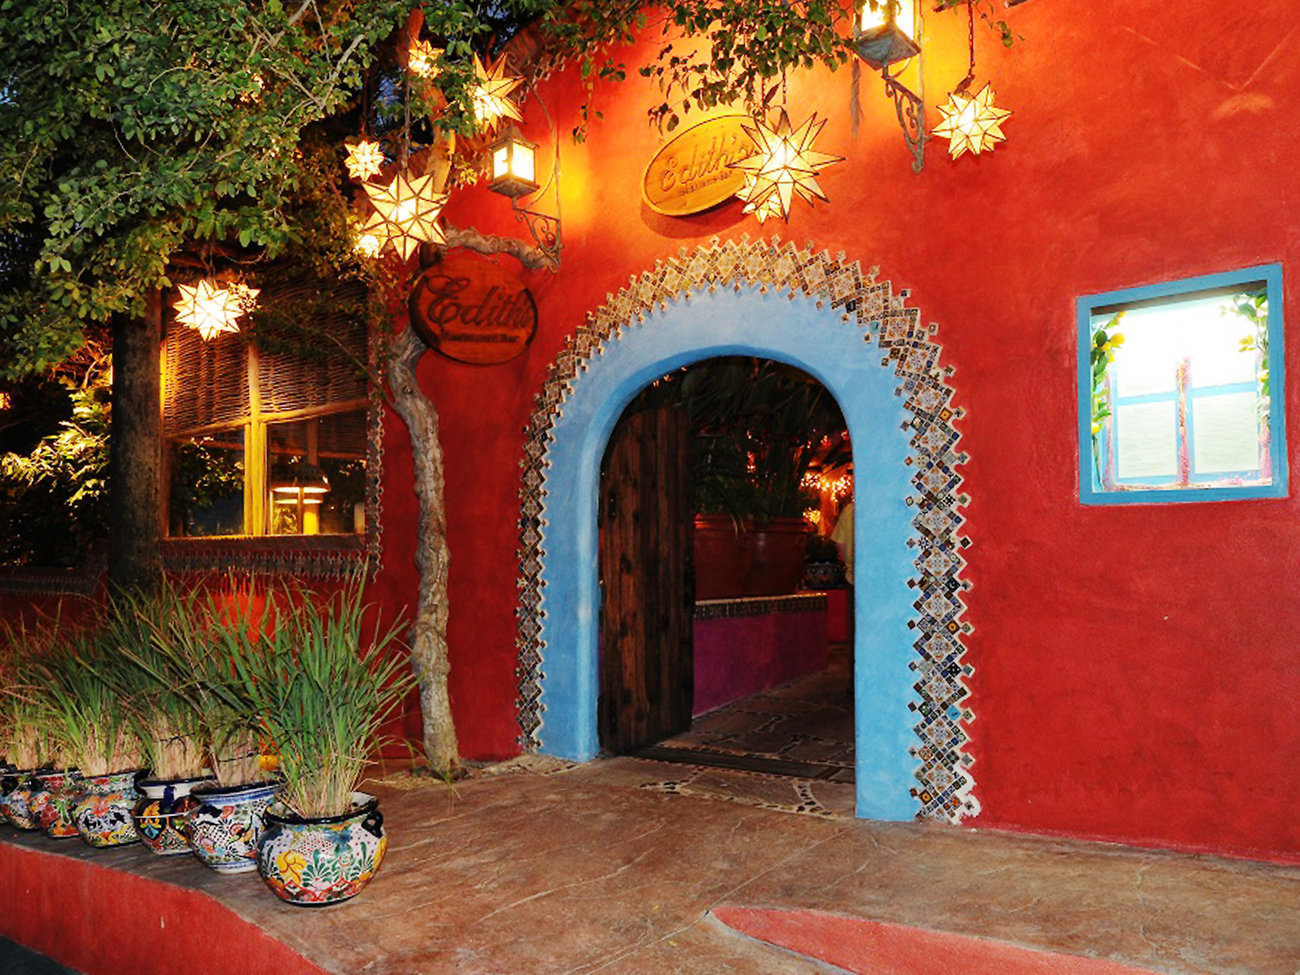 Edith's Restaurant in Los Cabos